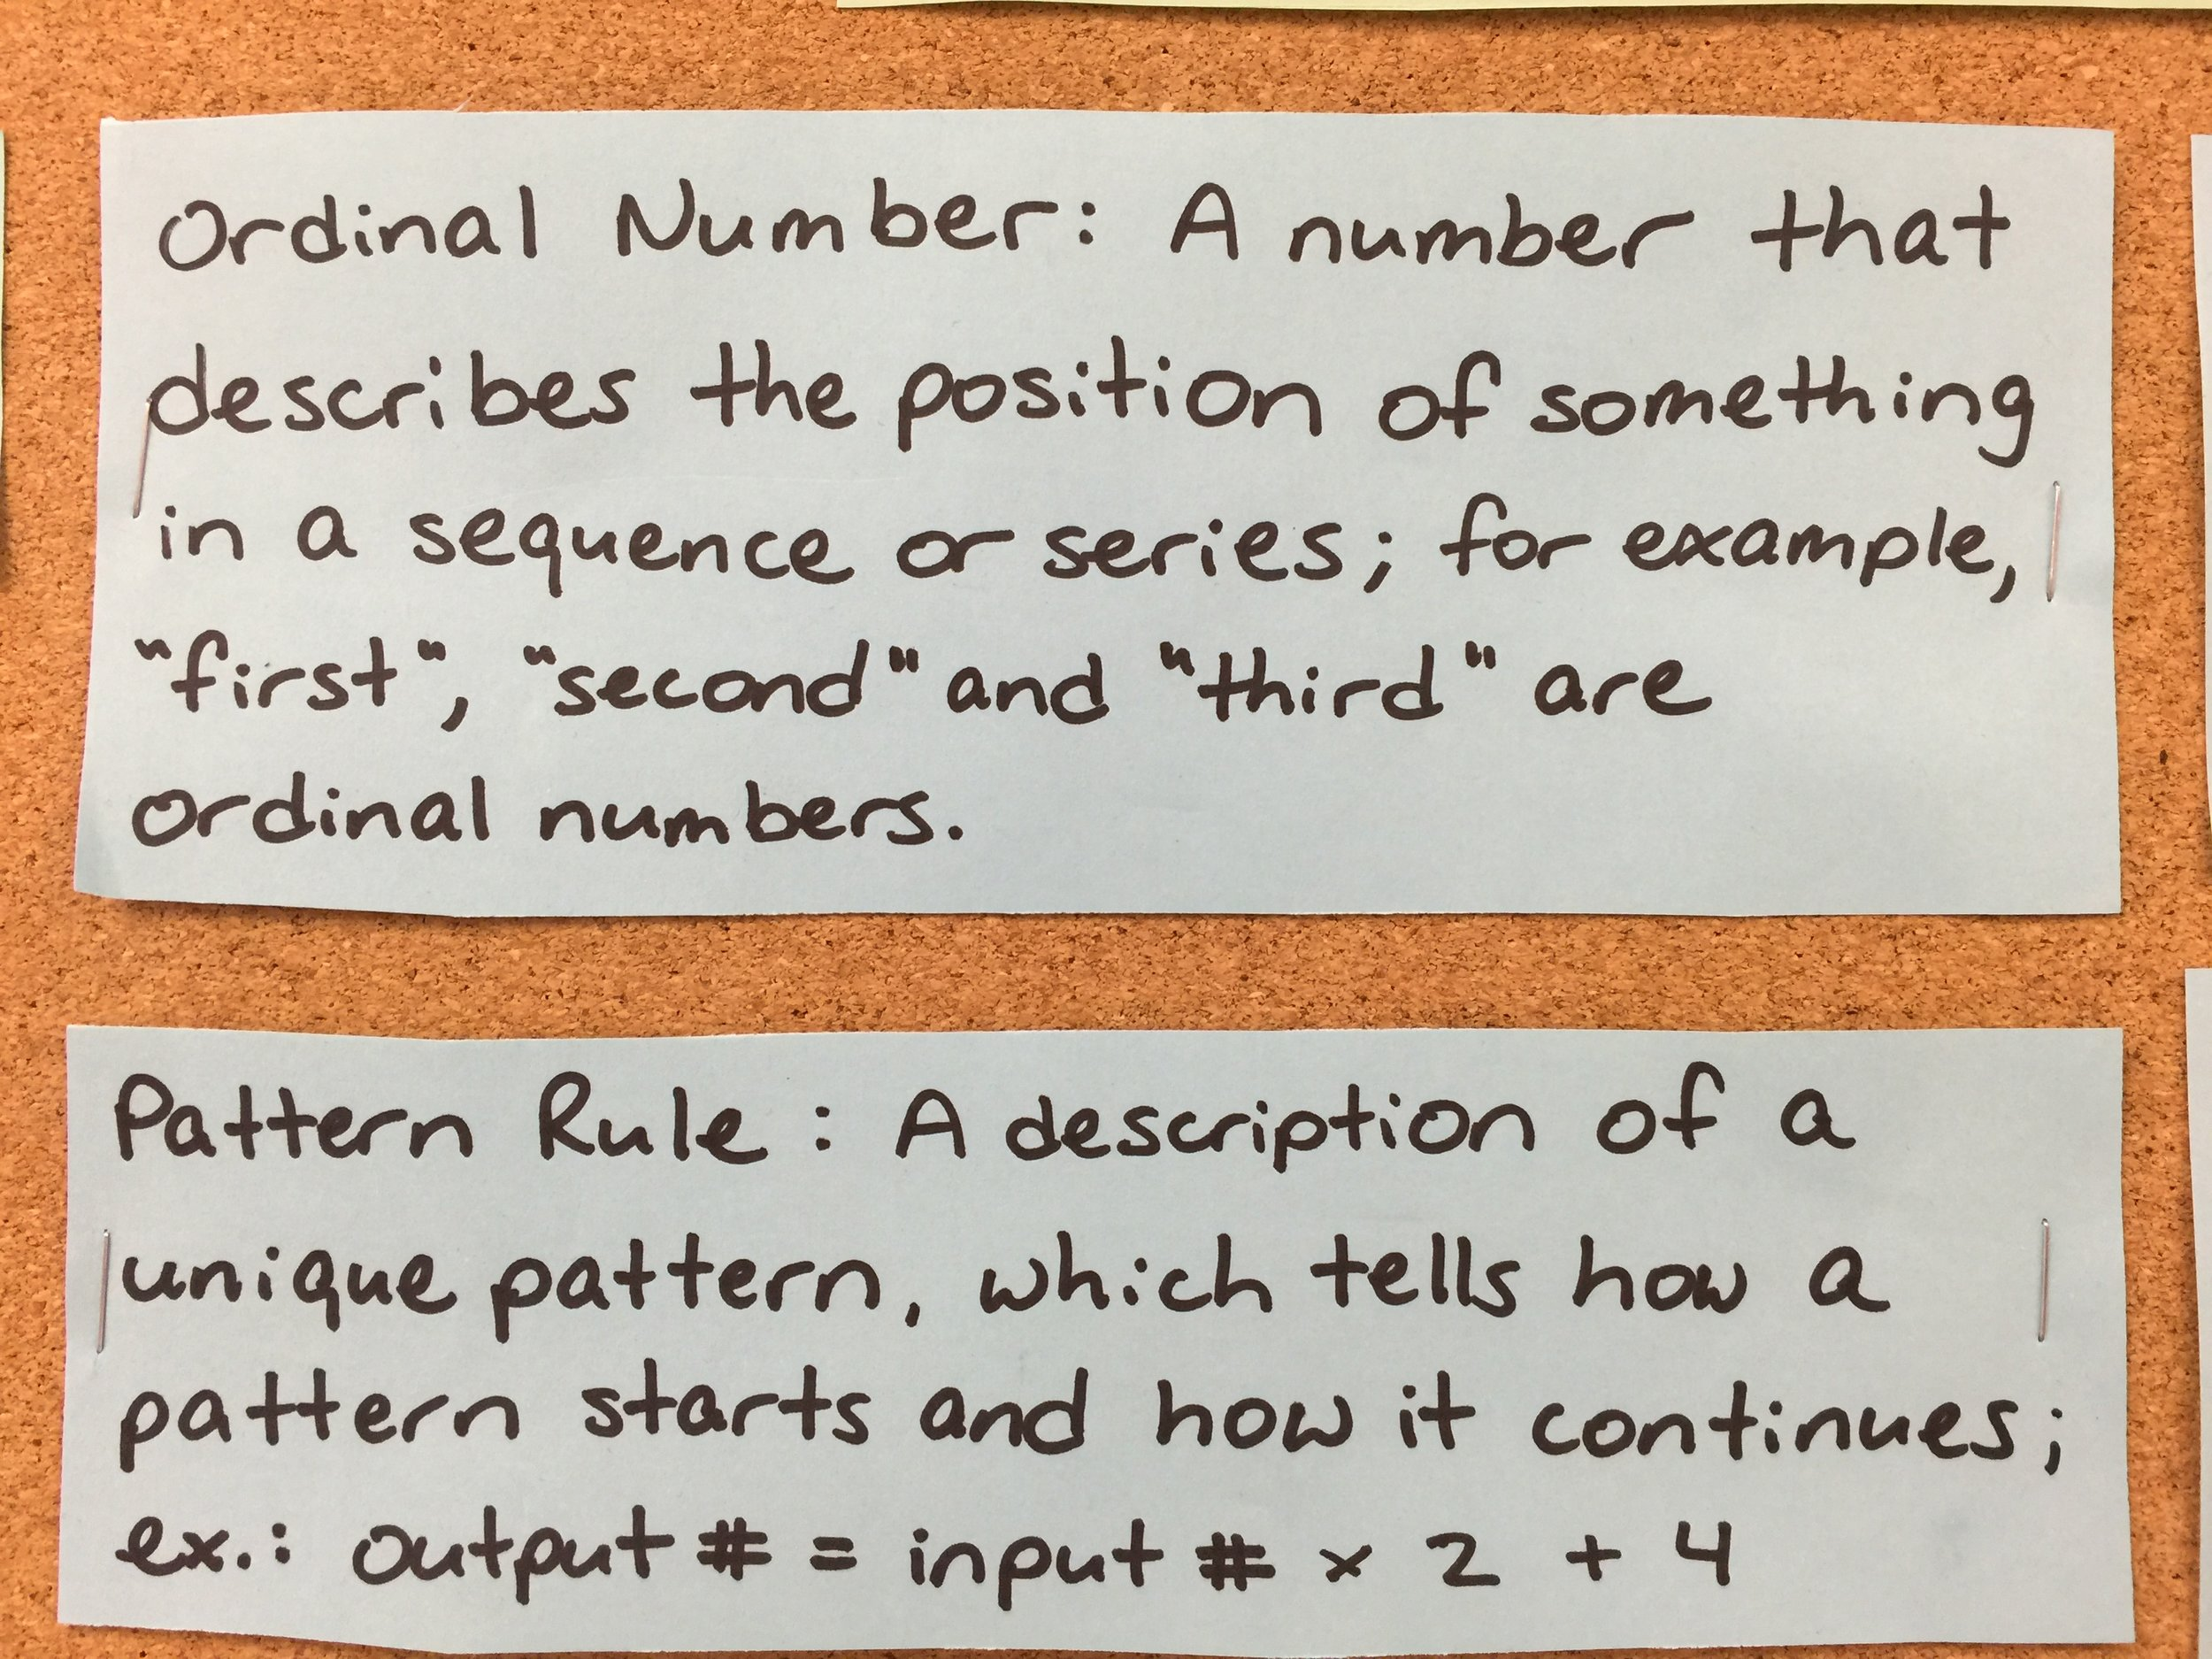 ordinal-number-pattern-rule.jpg